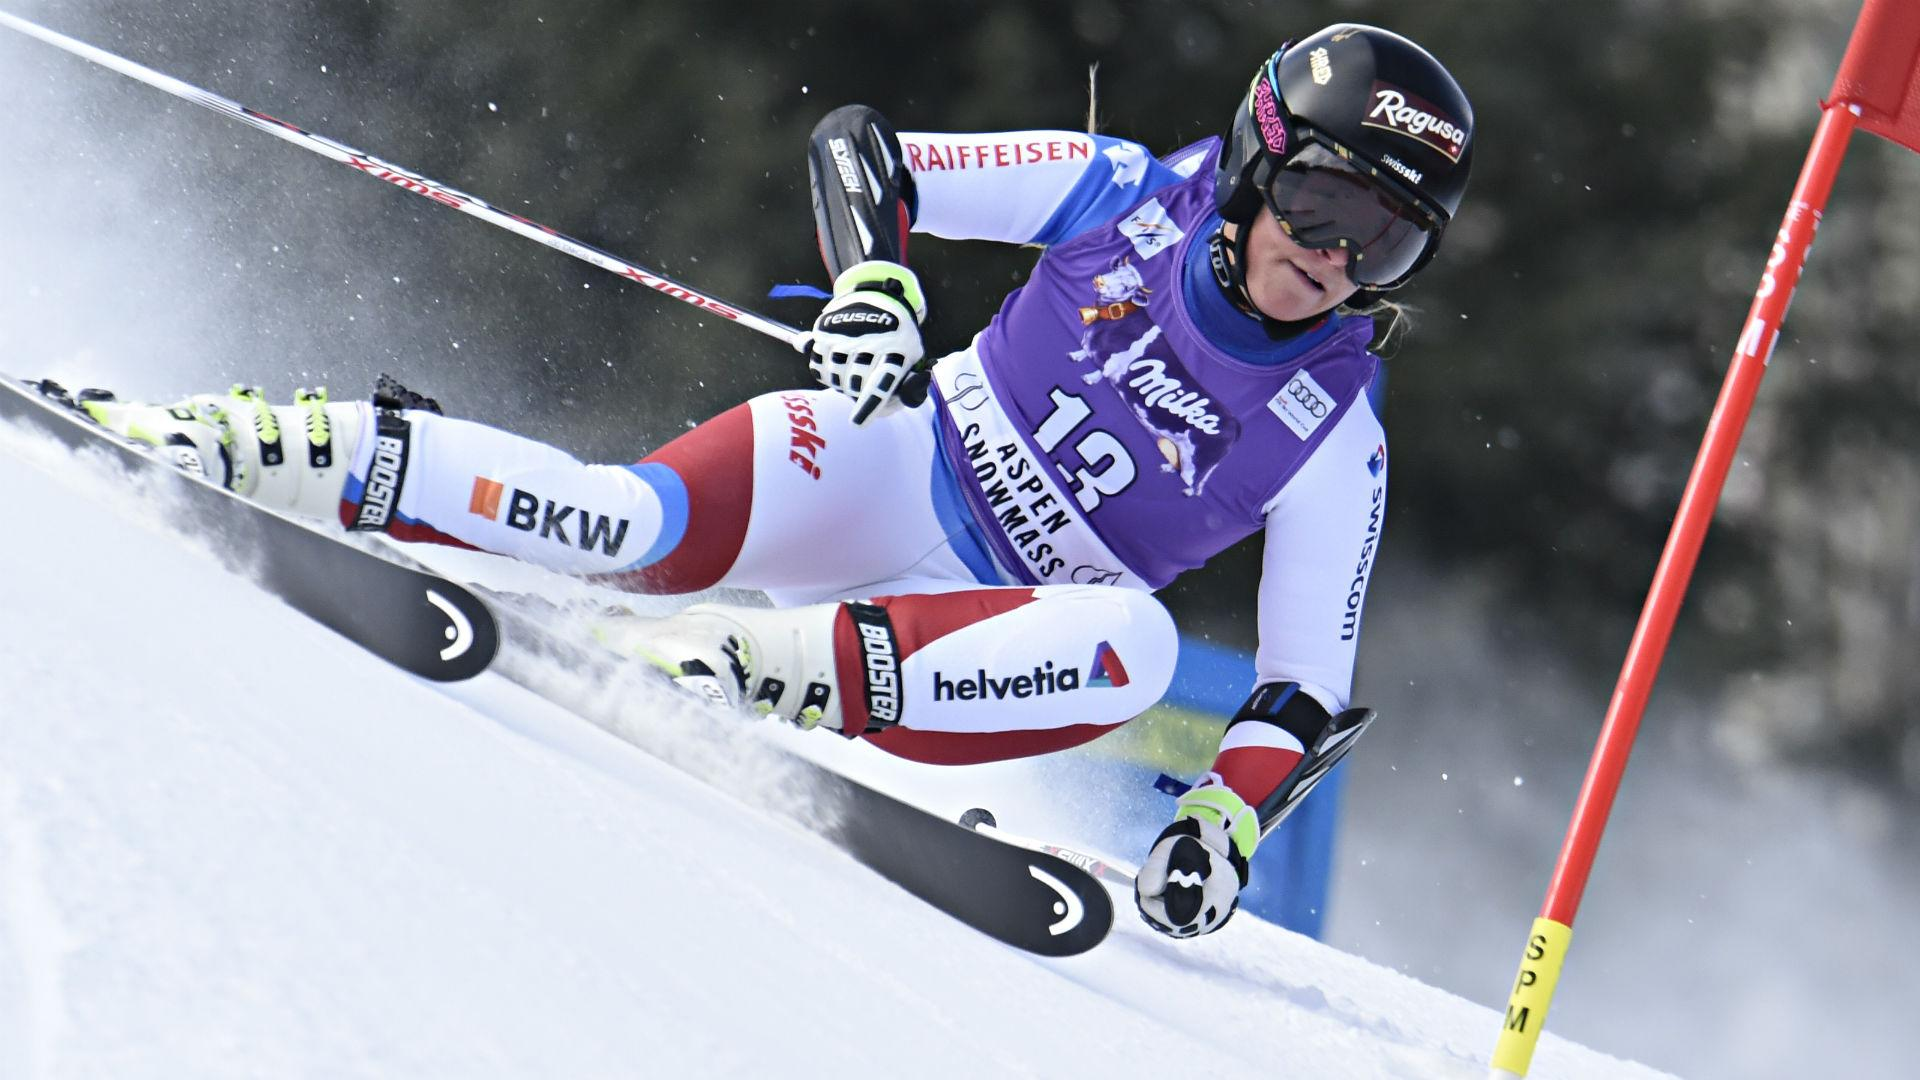 Lucky 13 for Gut as Shiffrin and Vonn tumble in Aspen